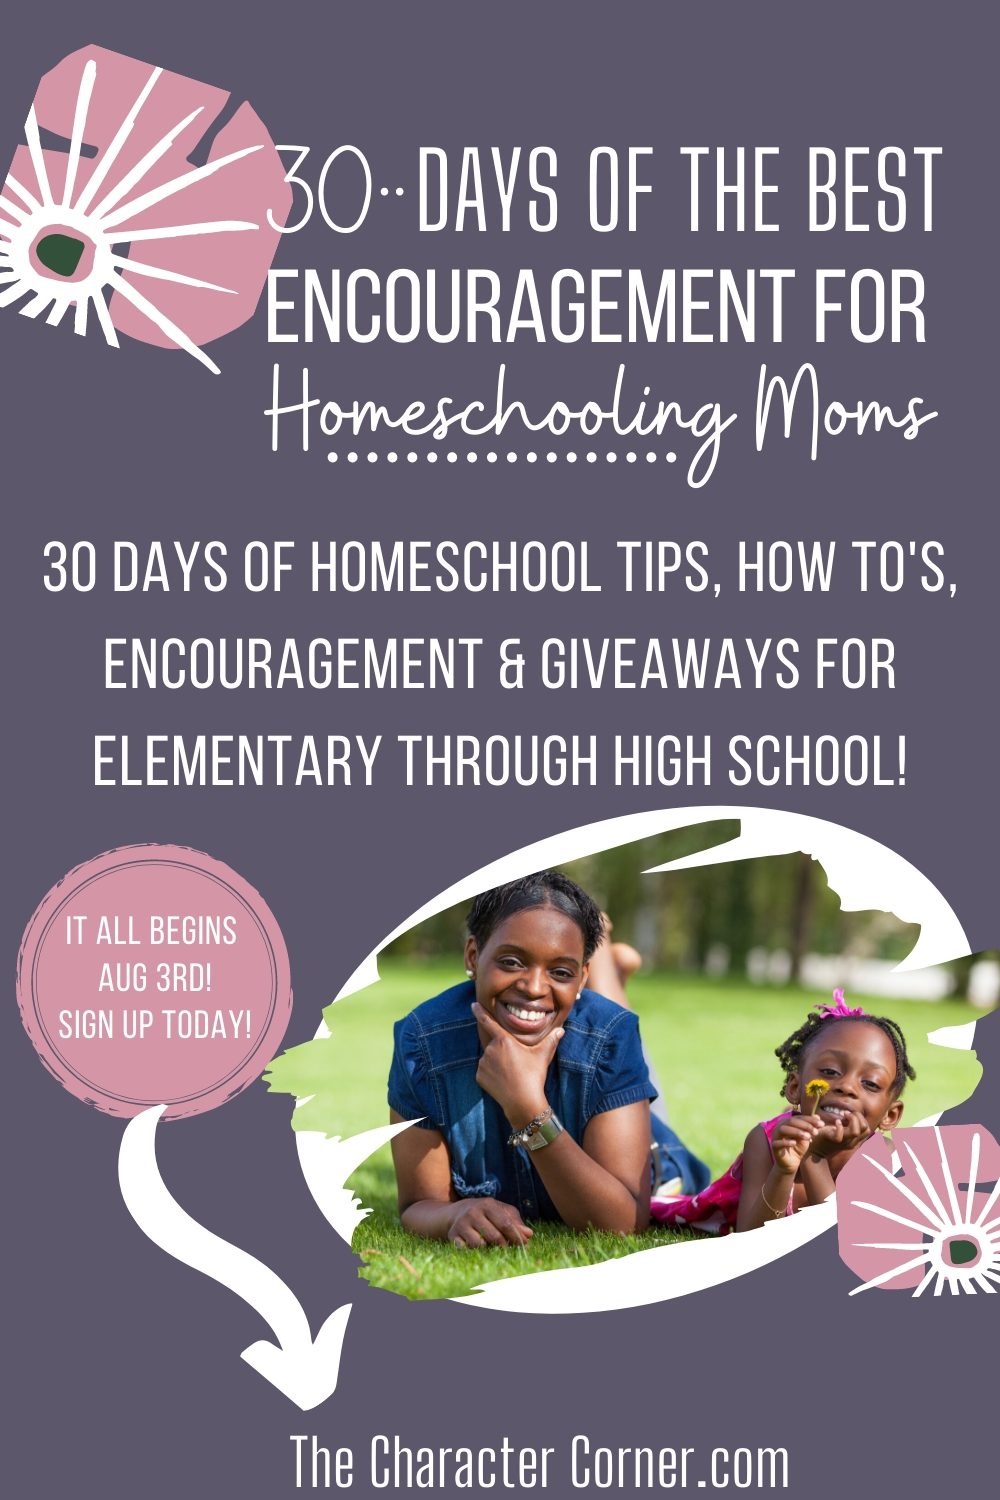 30 Days of the Best Encouragment for Homeschooling Moms